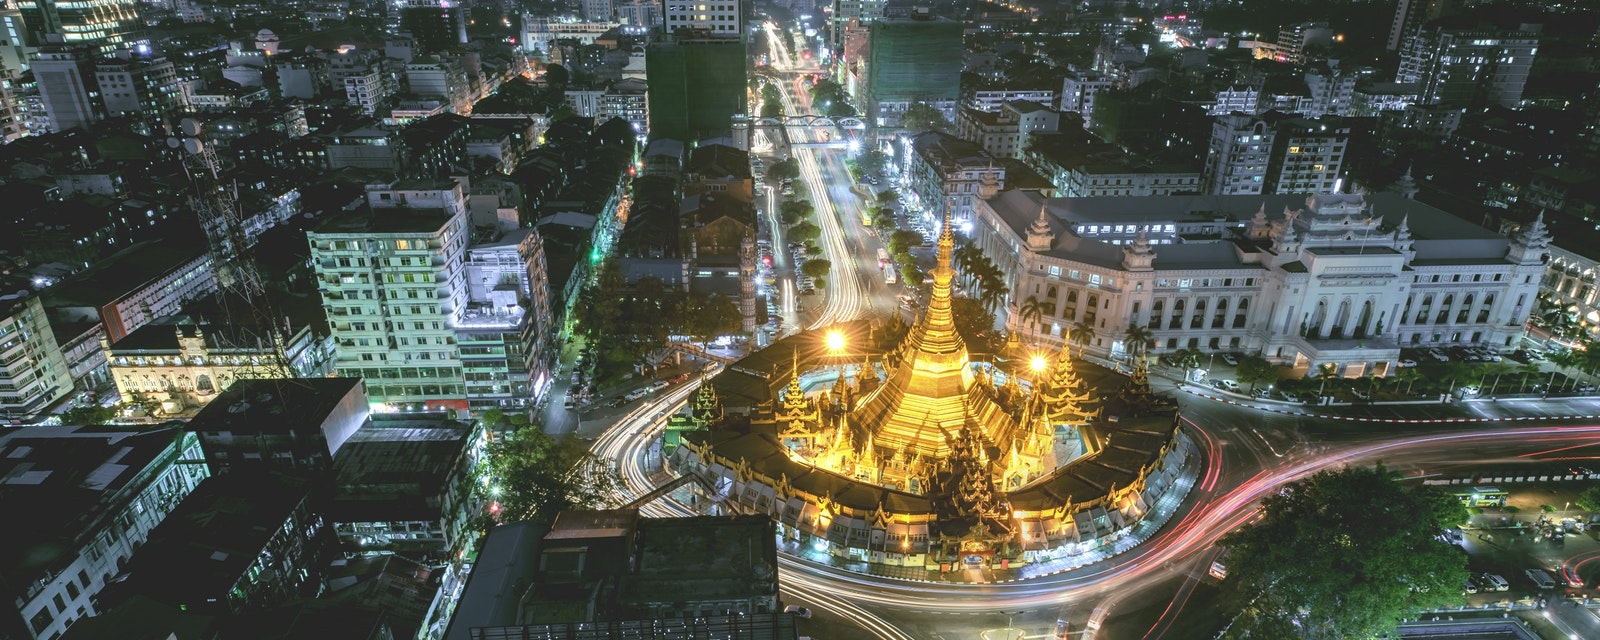 Night,Scape,Sule,Pagoda,Centre,Of,City,In,Yangon,,Myanmar,night